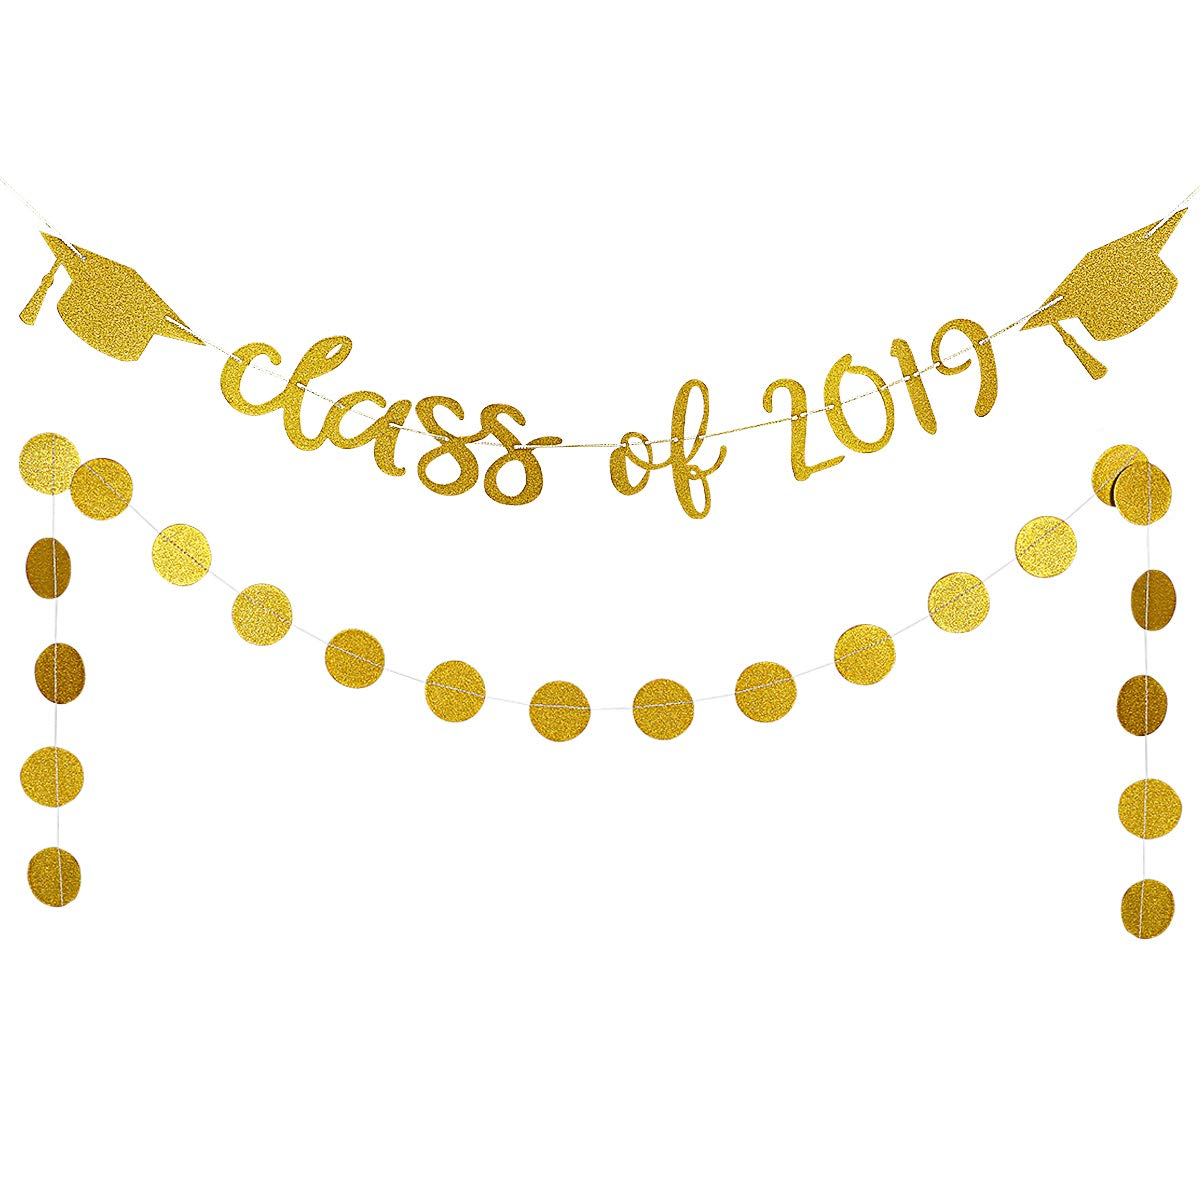 Graduation gold. Party decorations glittery